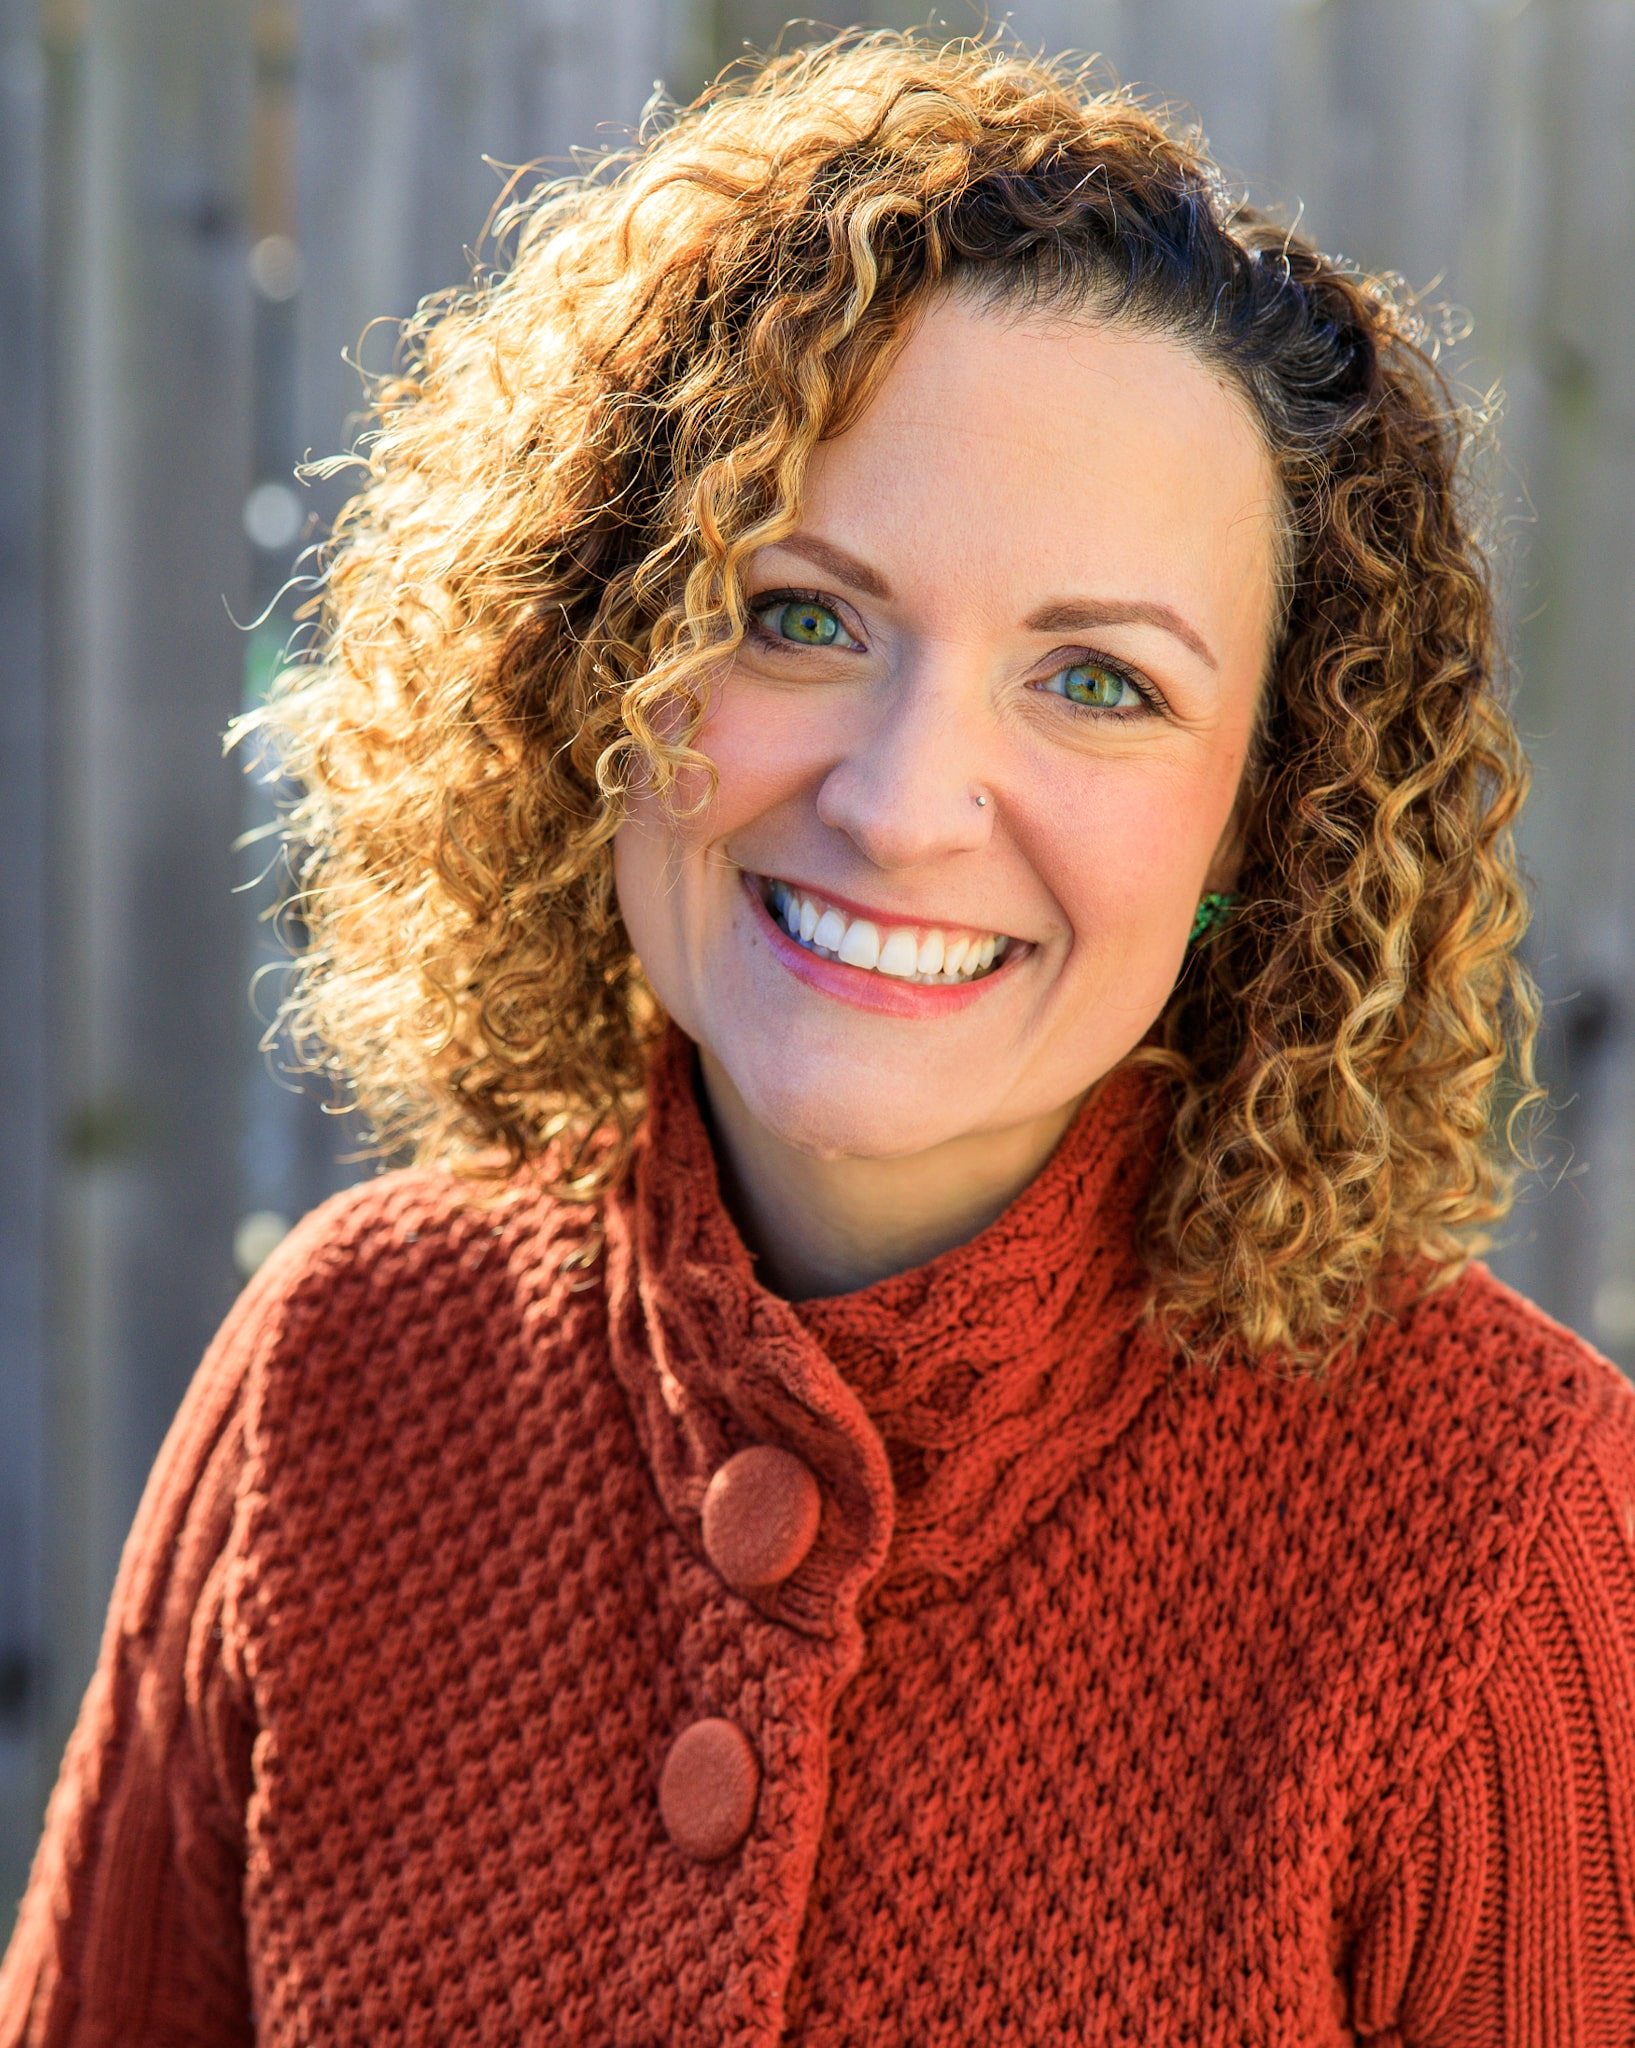 A smiling woman with green eyes, an orange sweater, and curly hair. Portrait taken in Berkley, Michigan 48072.